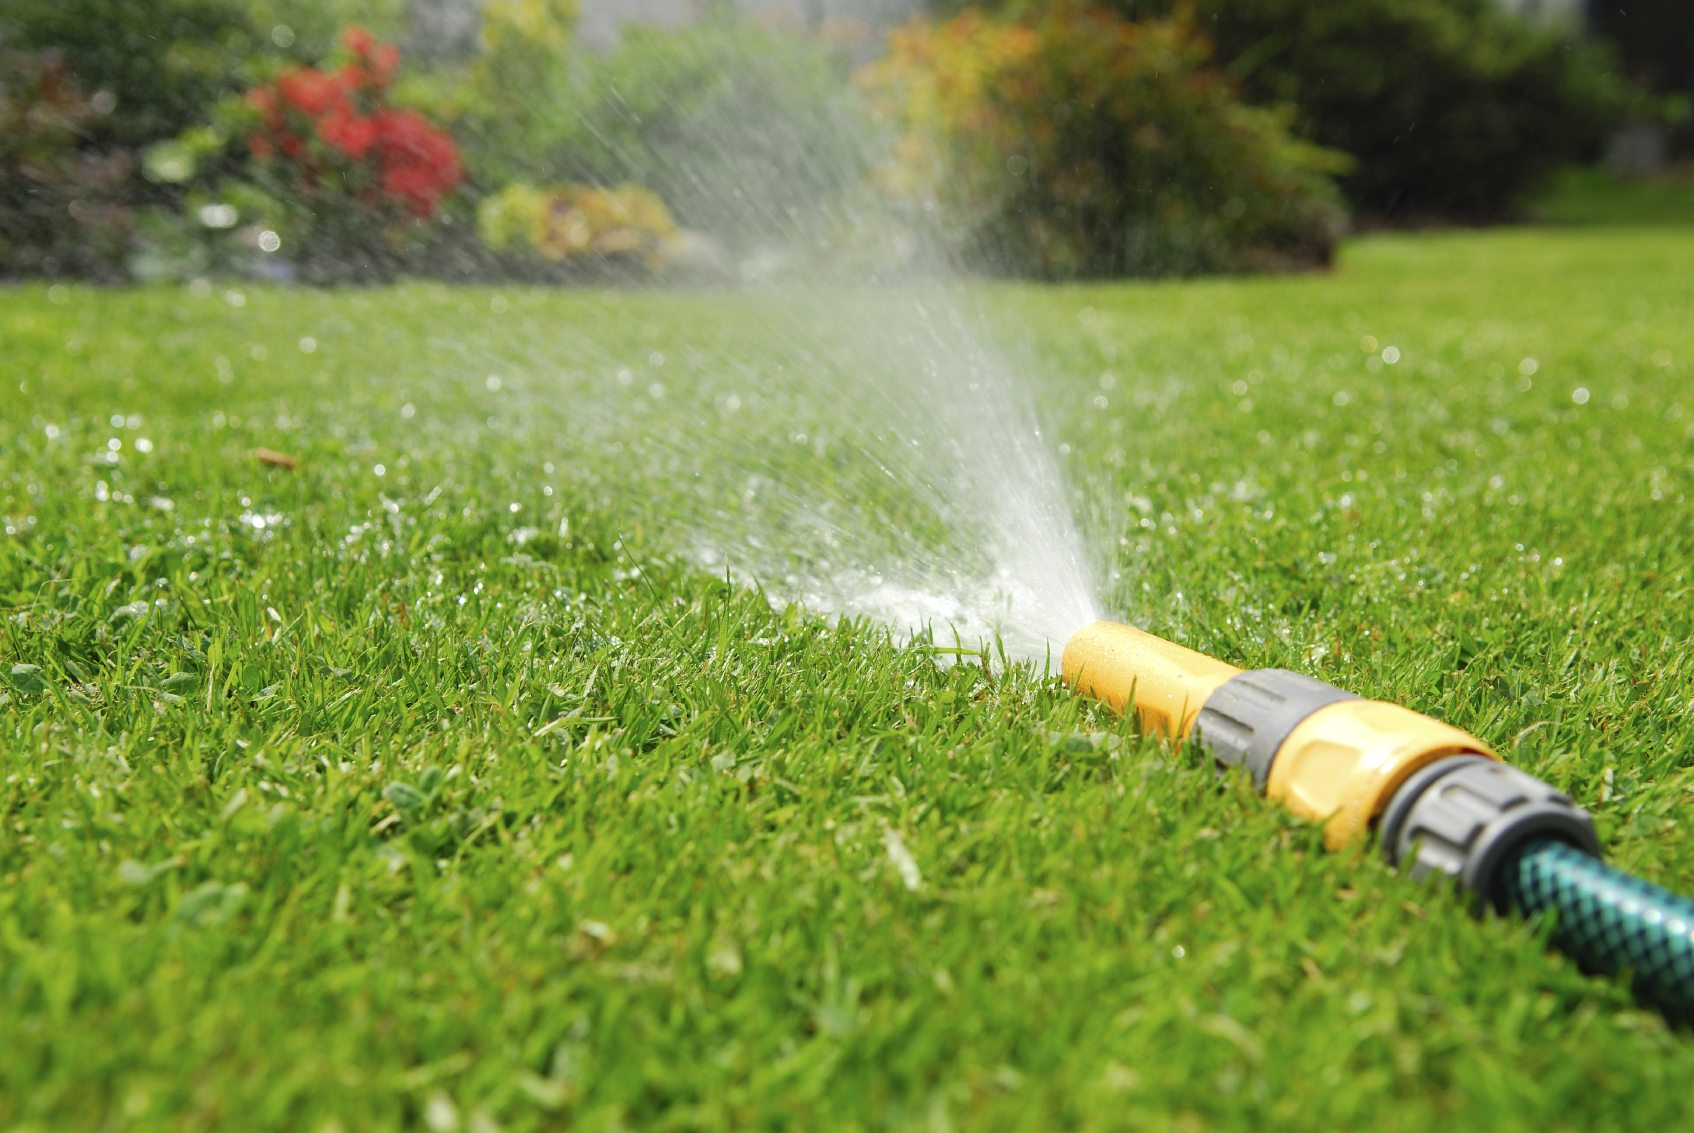 Watering techniques should be adjusted during the growing season.